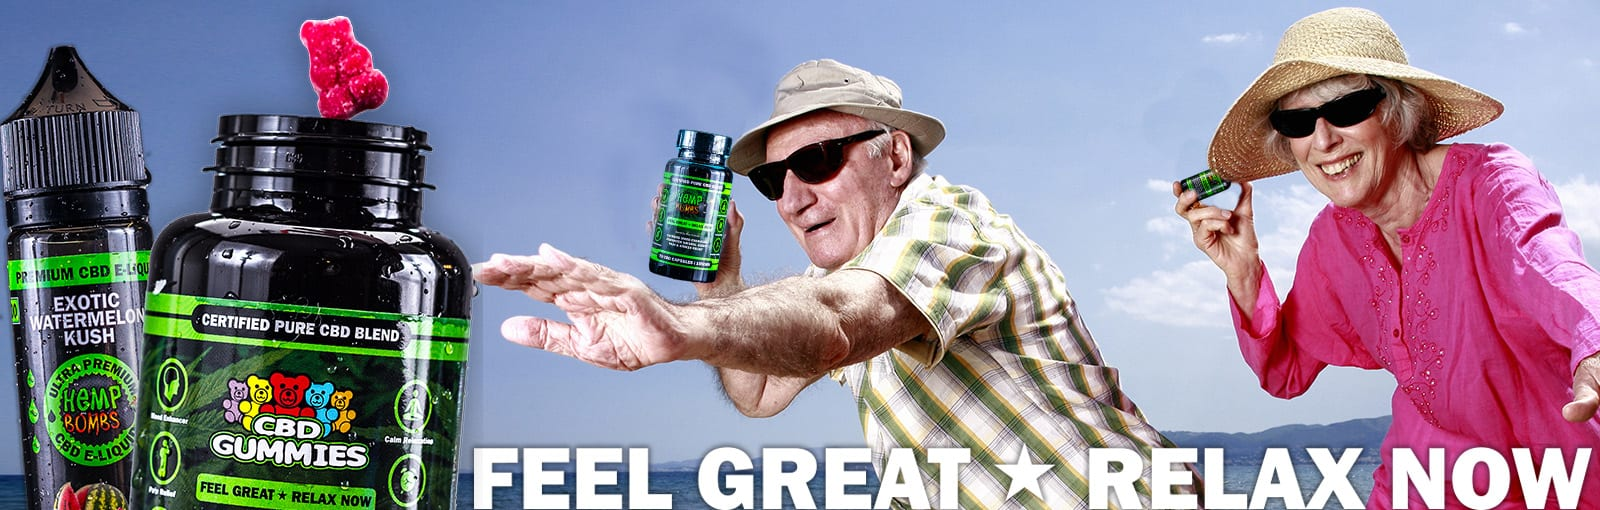 Senior Citizens on the beach holding Hemp Bombs products